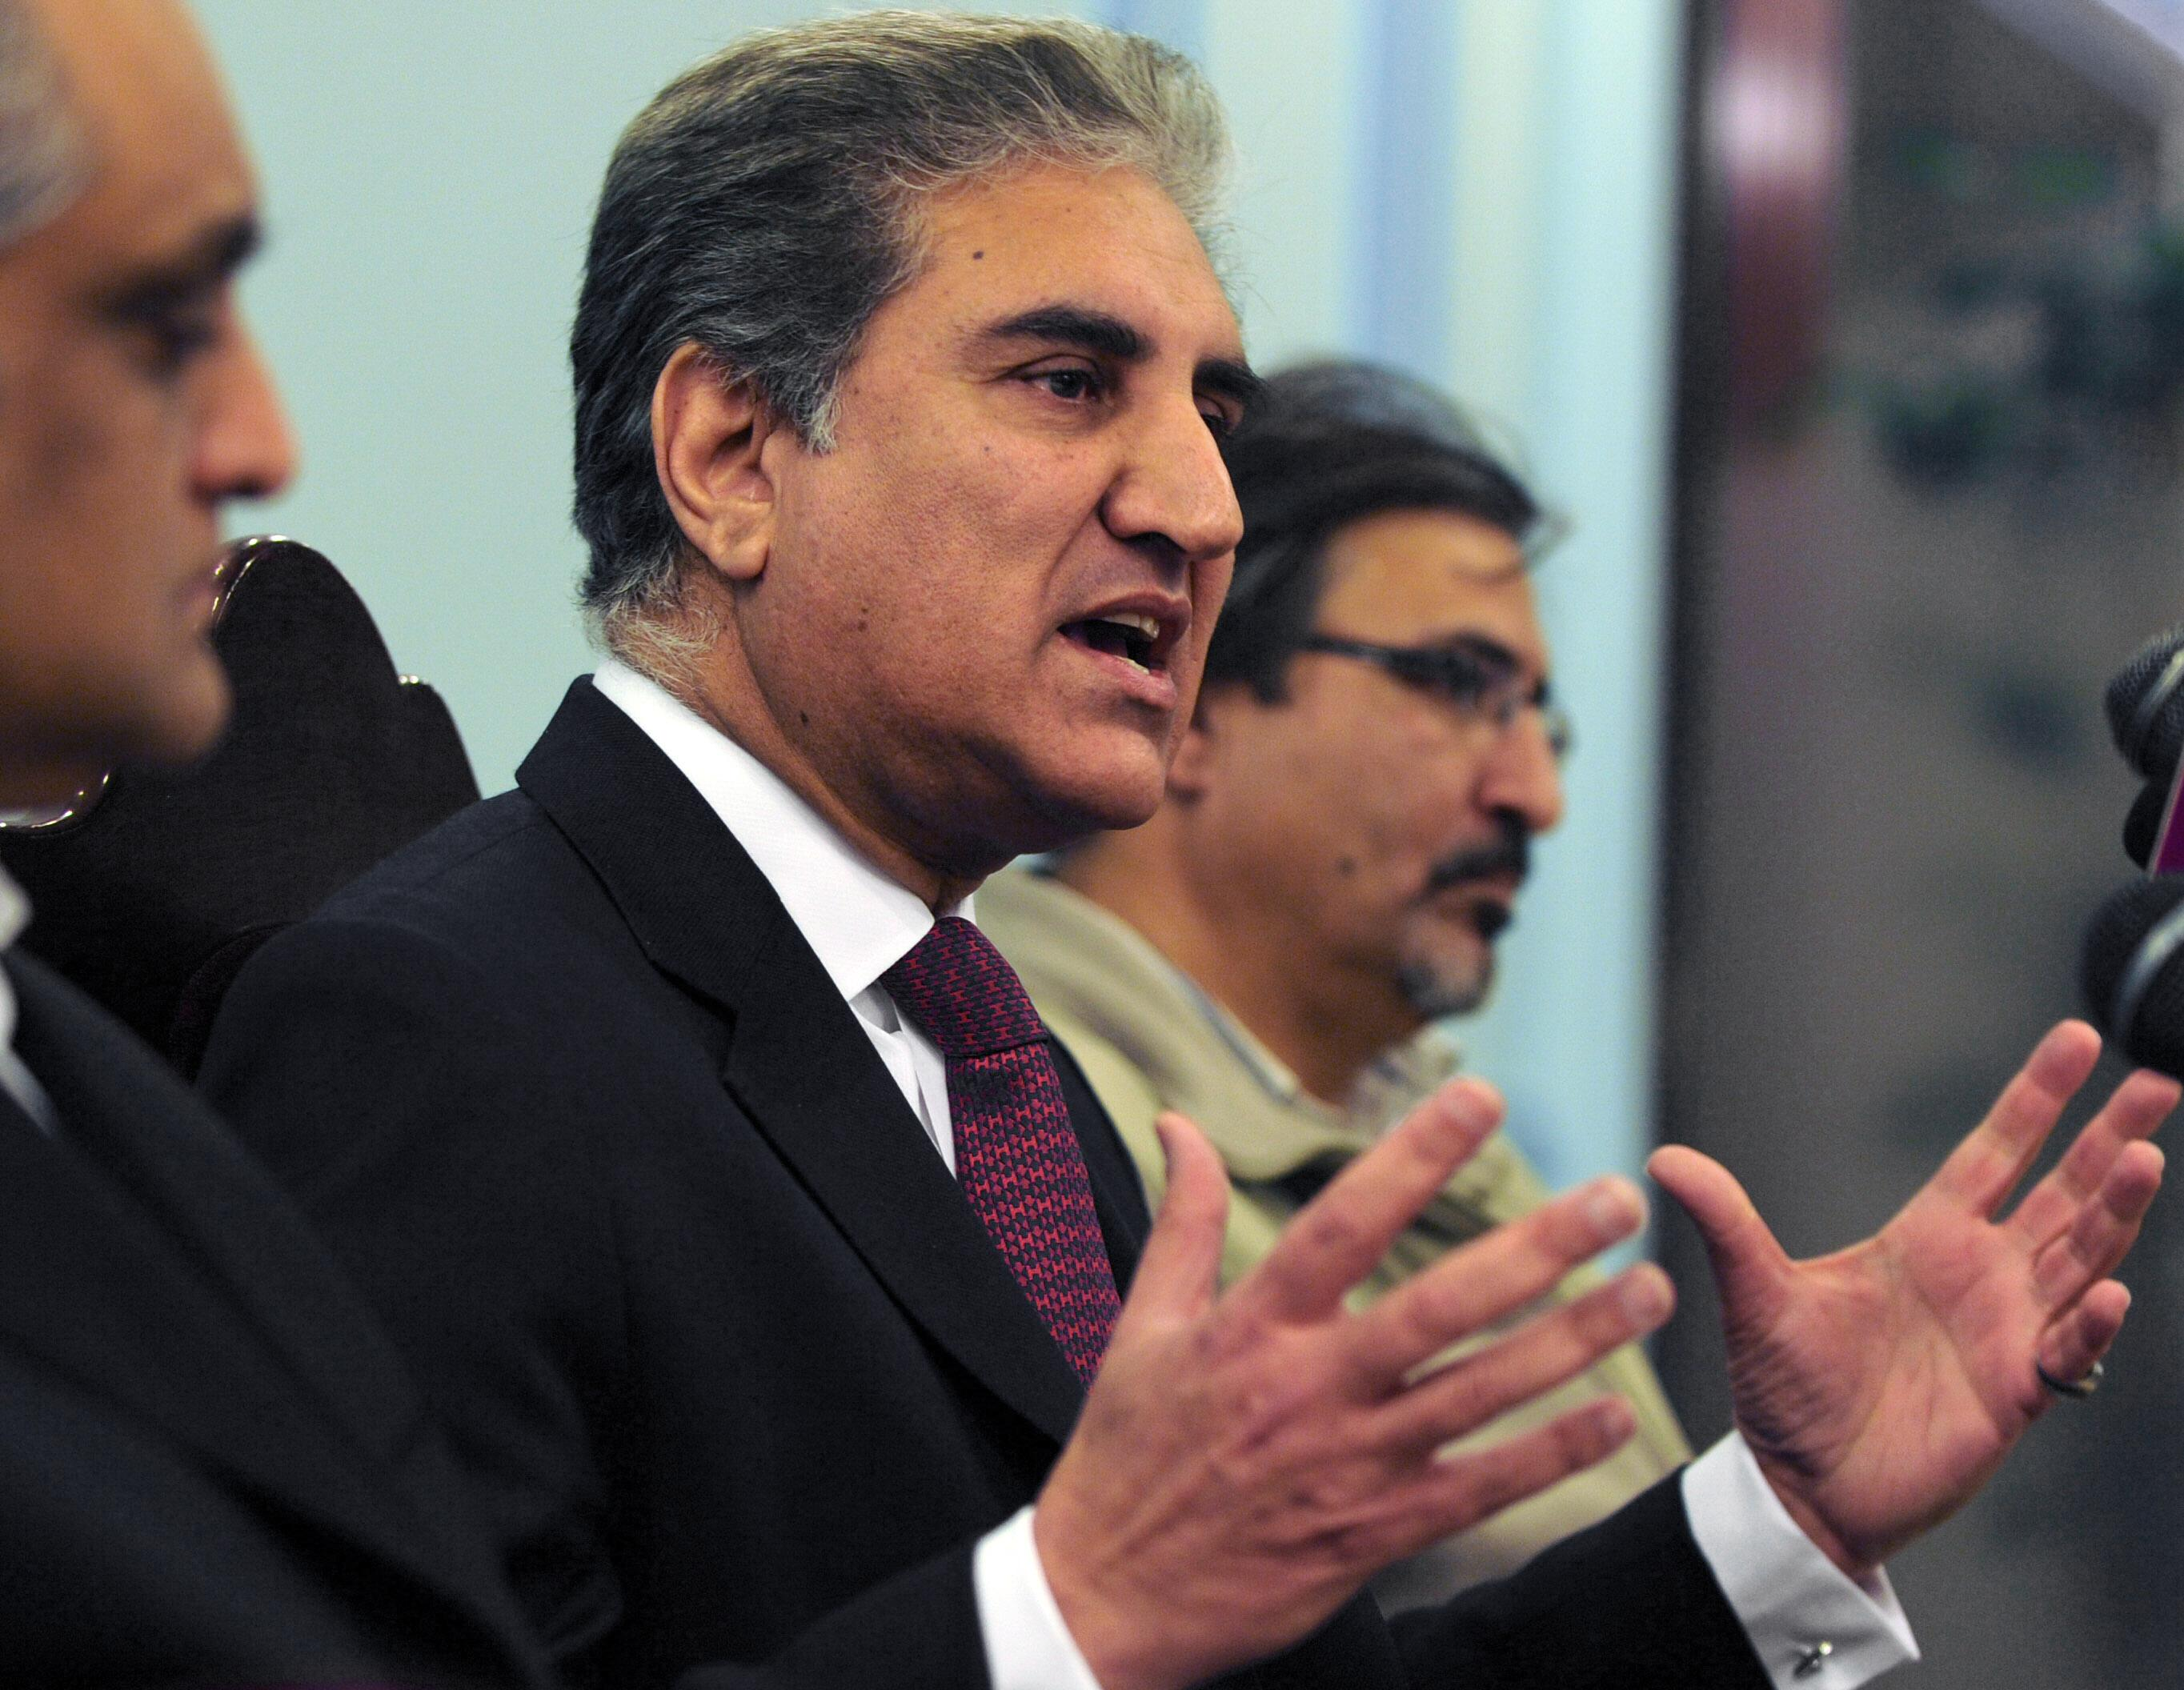 shah-mehmood-qureshi-afp-2-2-2-2-2-2-2-2-2-2-2-2-3-2-2-2-2-2-2-2-2-2-3-2-2